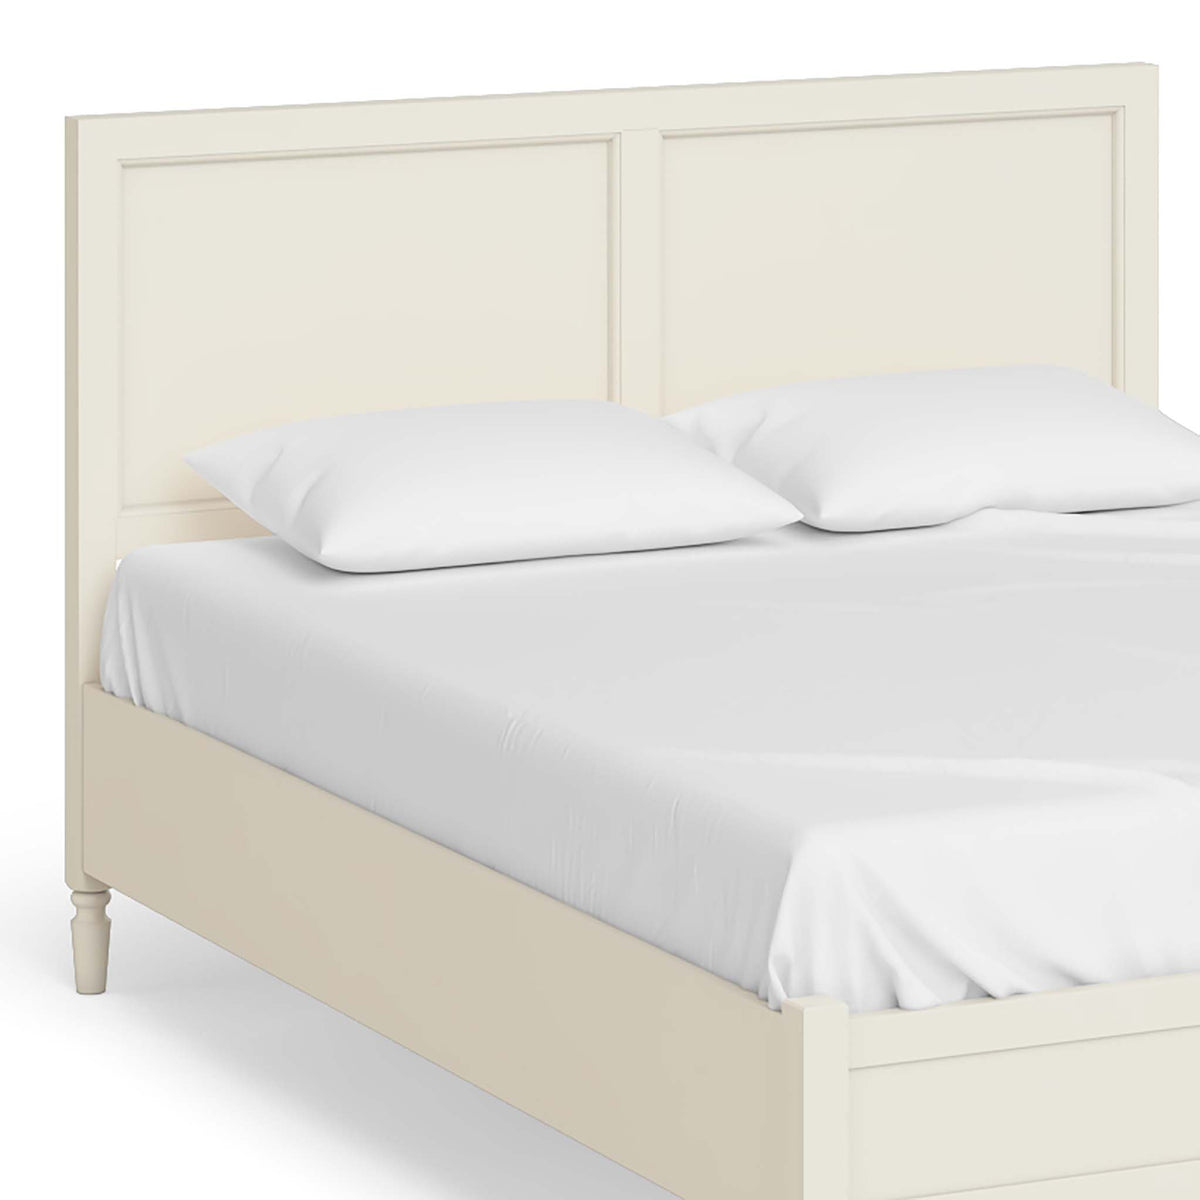 The Muslanne Cream 5' King Size Bed Frame - Close Up of Bed Head